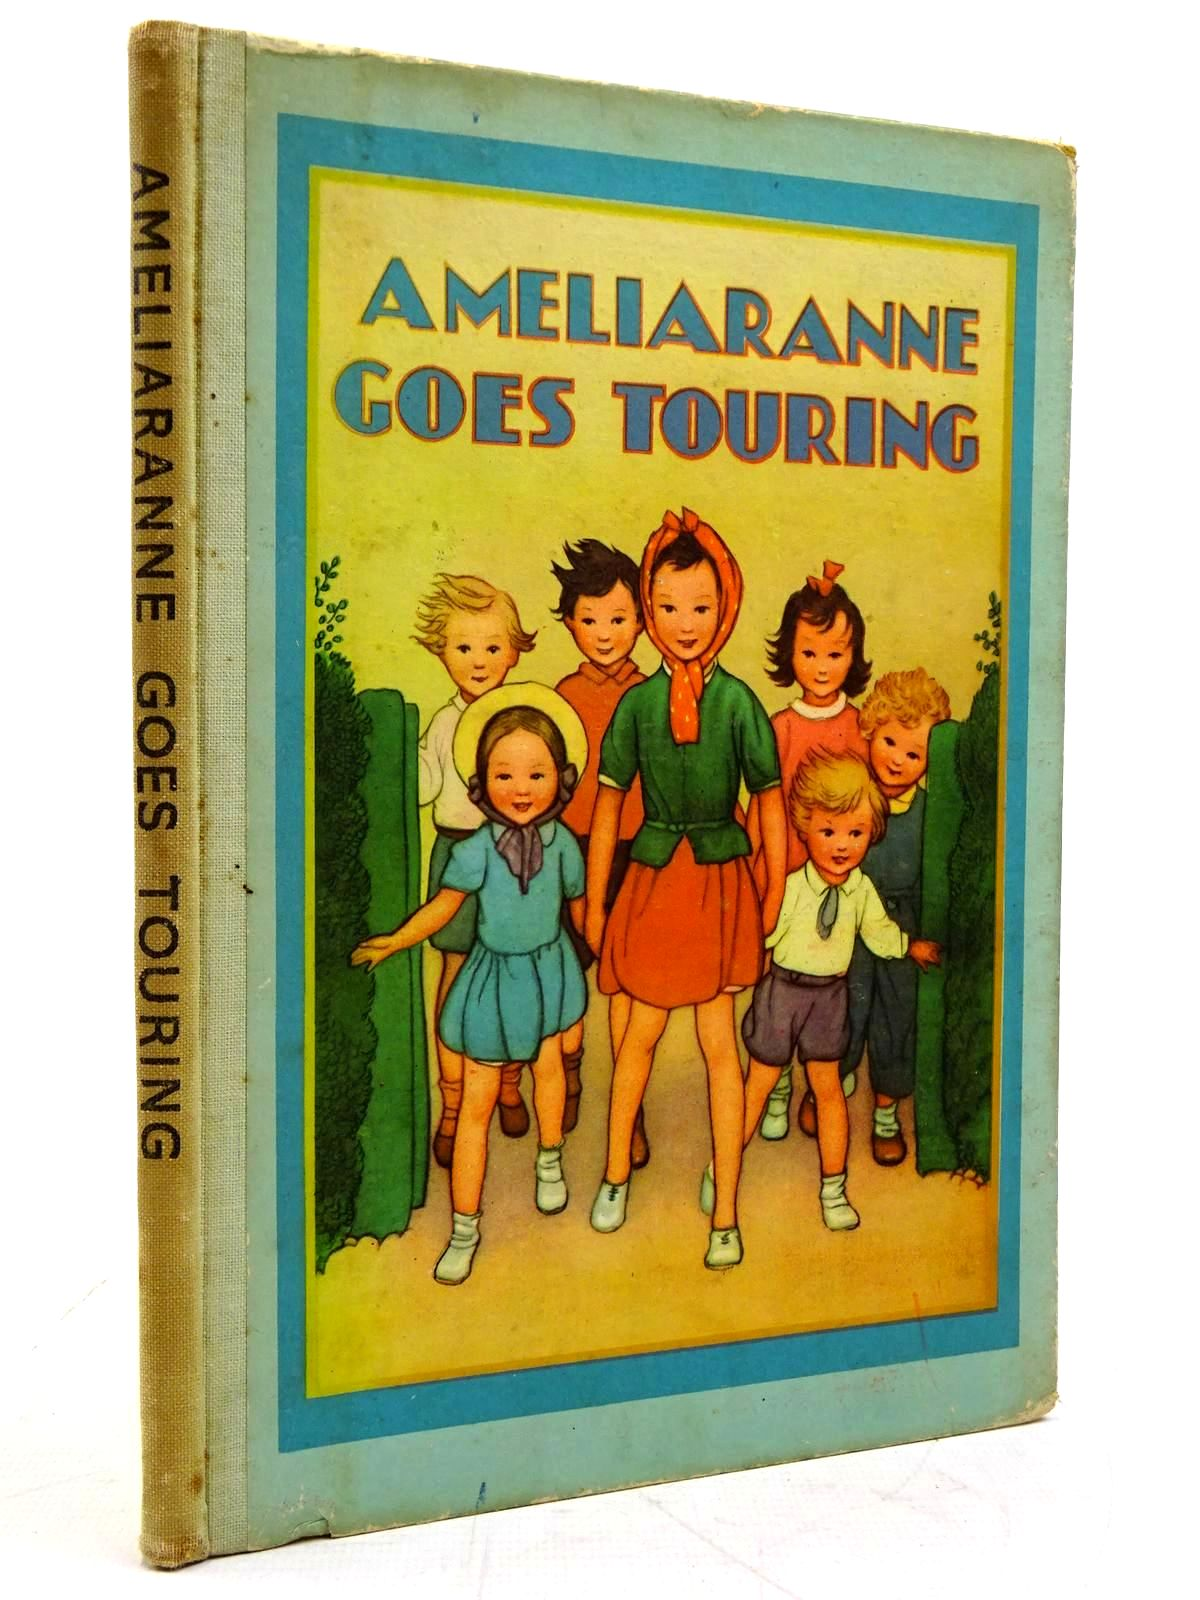 Photo of AMELIARANNE GOES TOURING written by Heward, Constance illustrated by Pearse, S.B. published by George G. Harrap & Co. Ltd. (STOCK CODE: 2131558)  for sale by Stella & Rose's Books